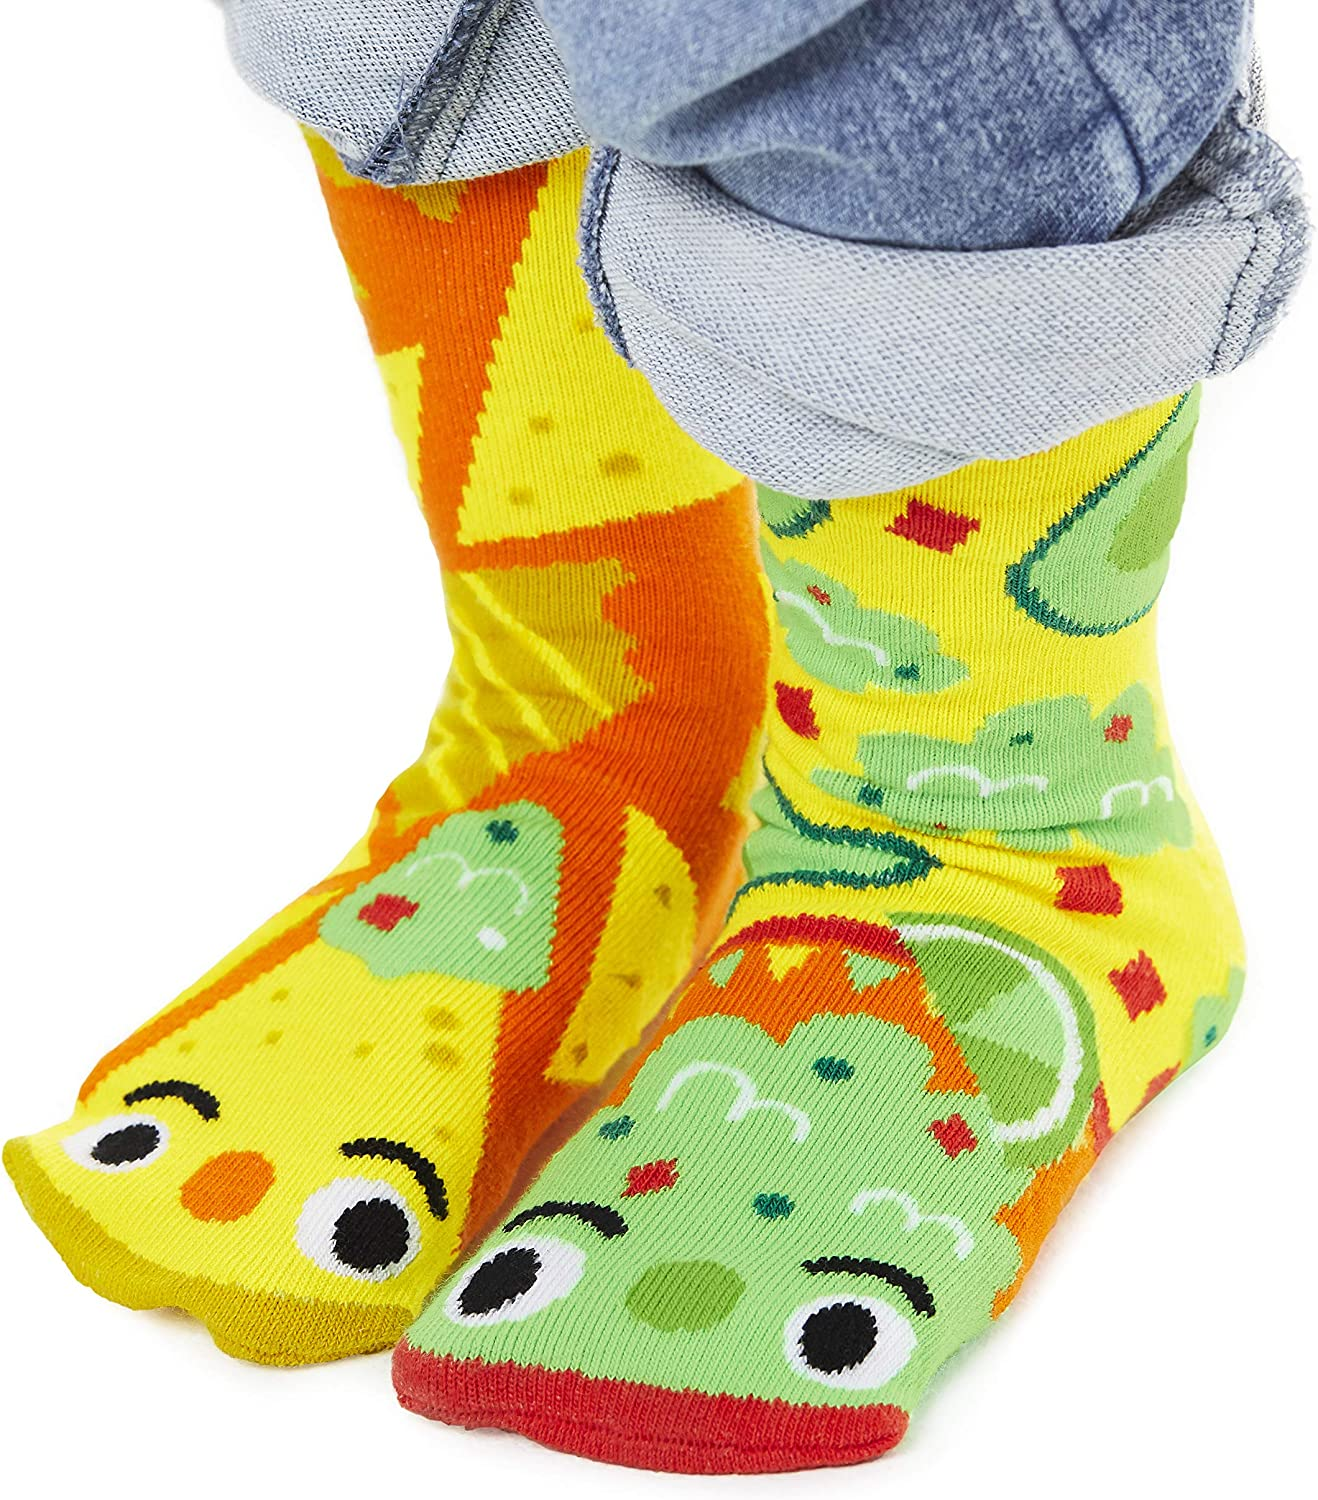 Kids Chips & Guac Mismatched Avocado Socks With Grippers Artist Series